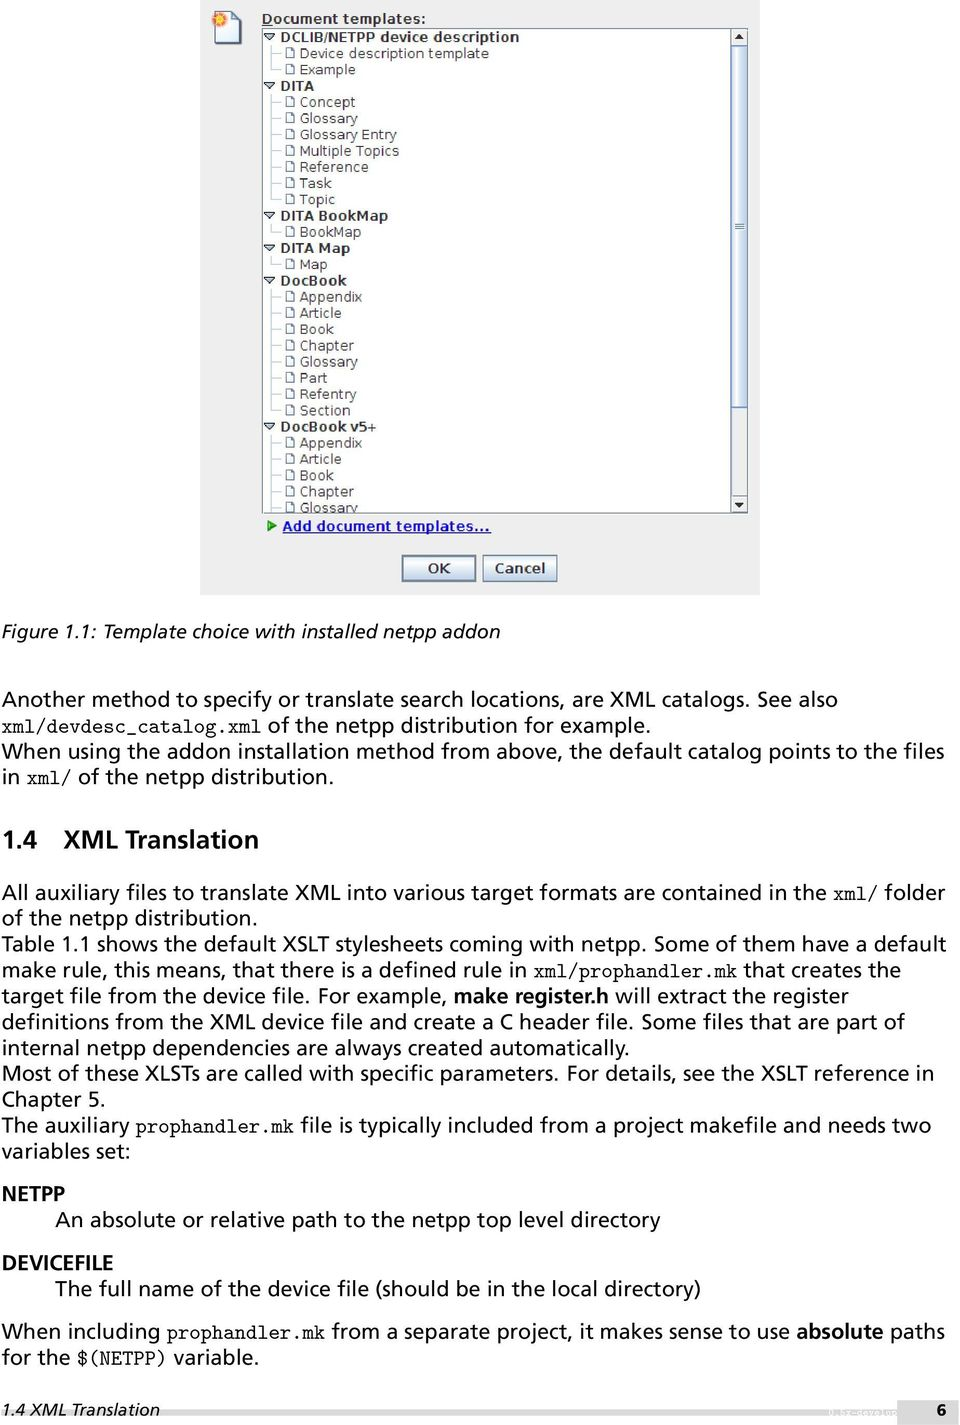 4 XML Translation All auxiliary files to translate XML into various target formats are contained in the xml/ folder of the netpp distribution. Table 1.